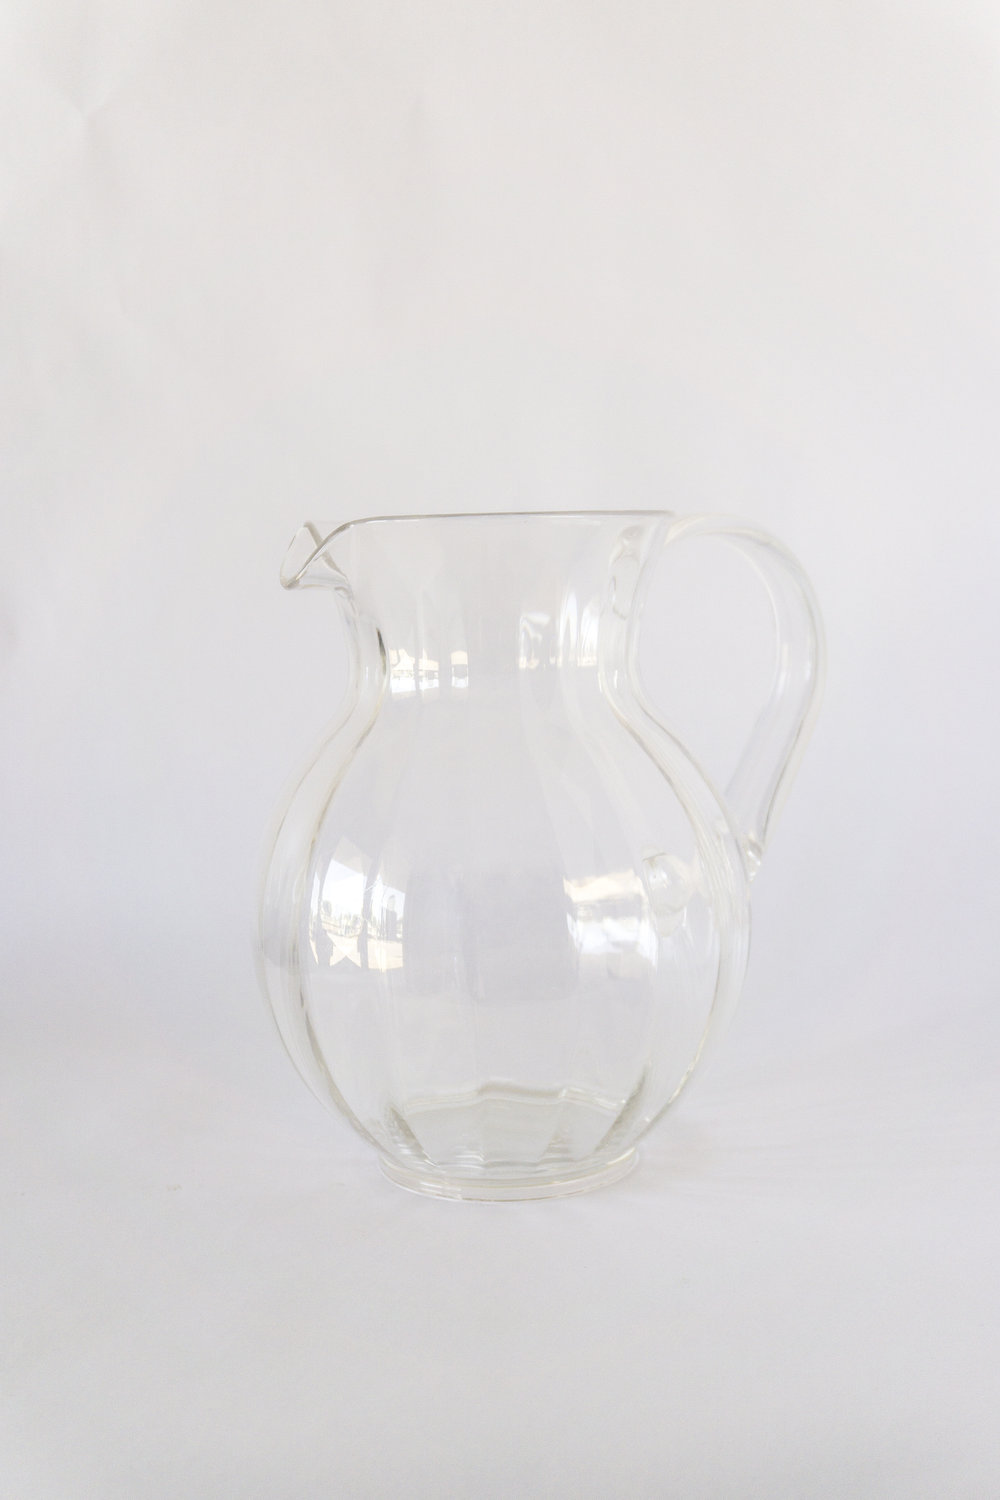 Tahiti Plastic Water Pitcher  75 oz  $3.00